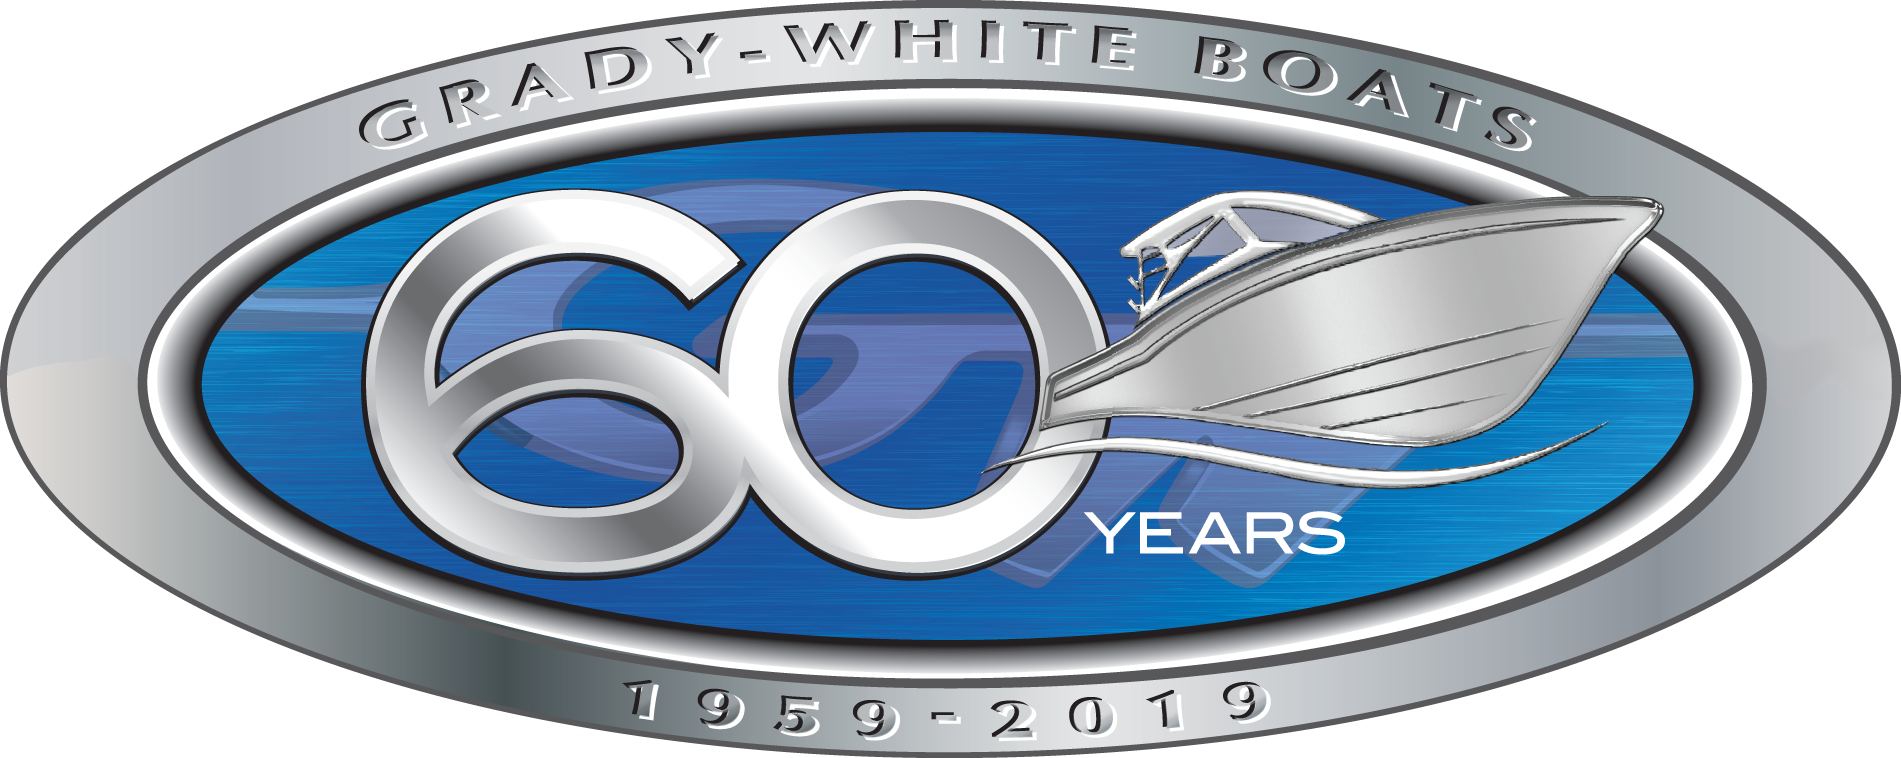 Grady-White Boats 60th Anniversary logo